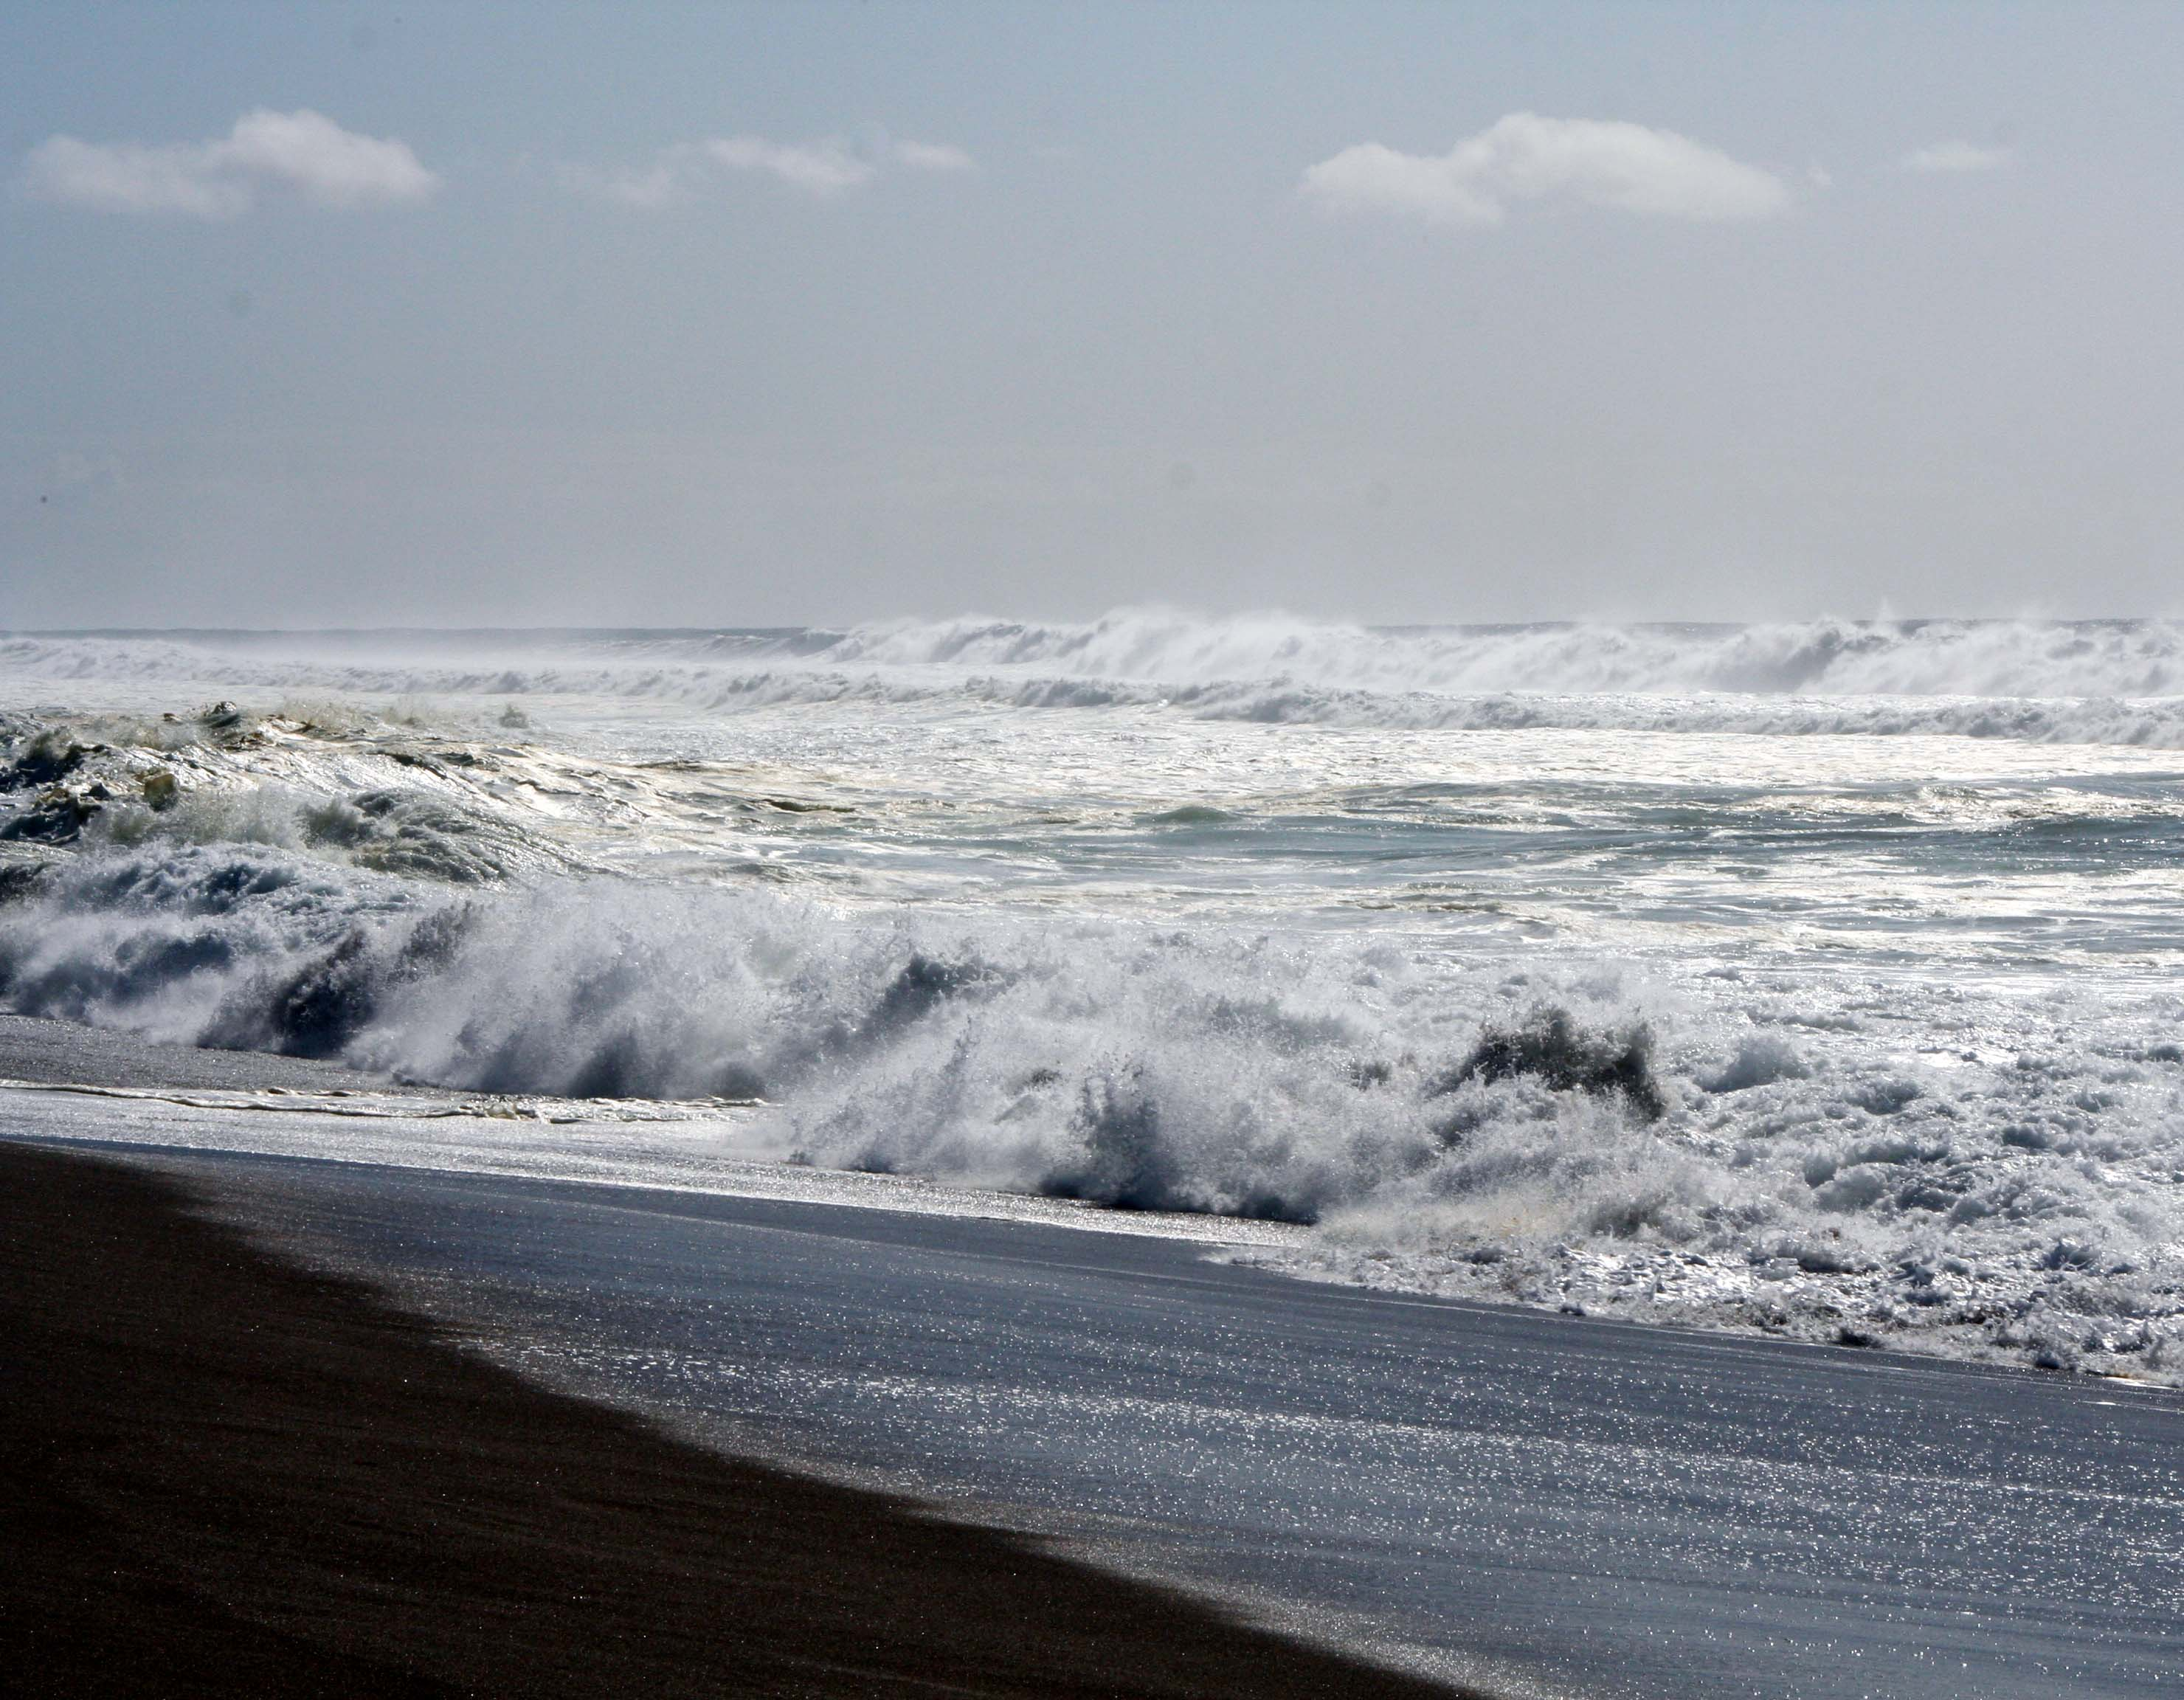 Waves pound the beach at South Beach, Pt. Reyes National Seashore. Photo by Curtis Mekemson.